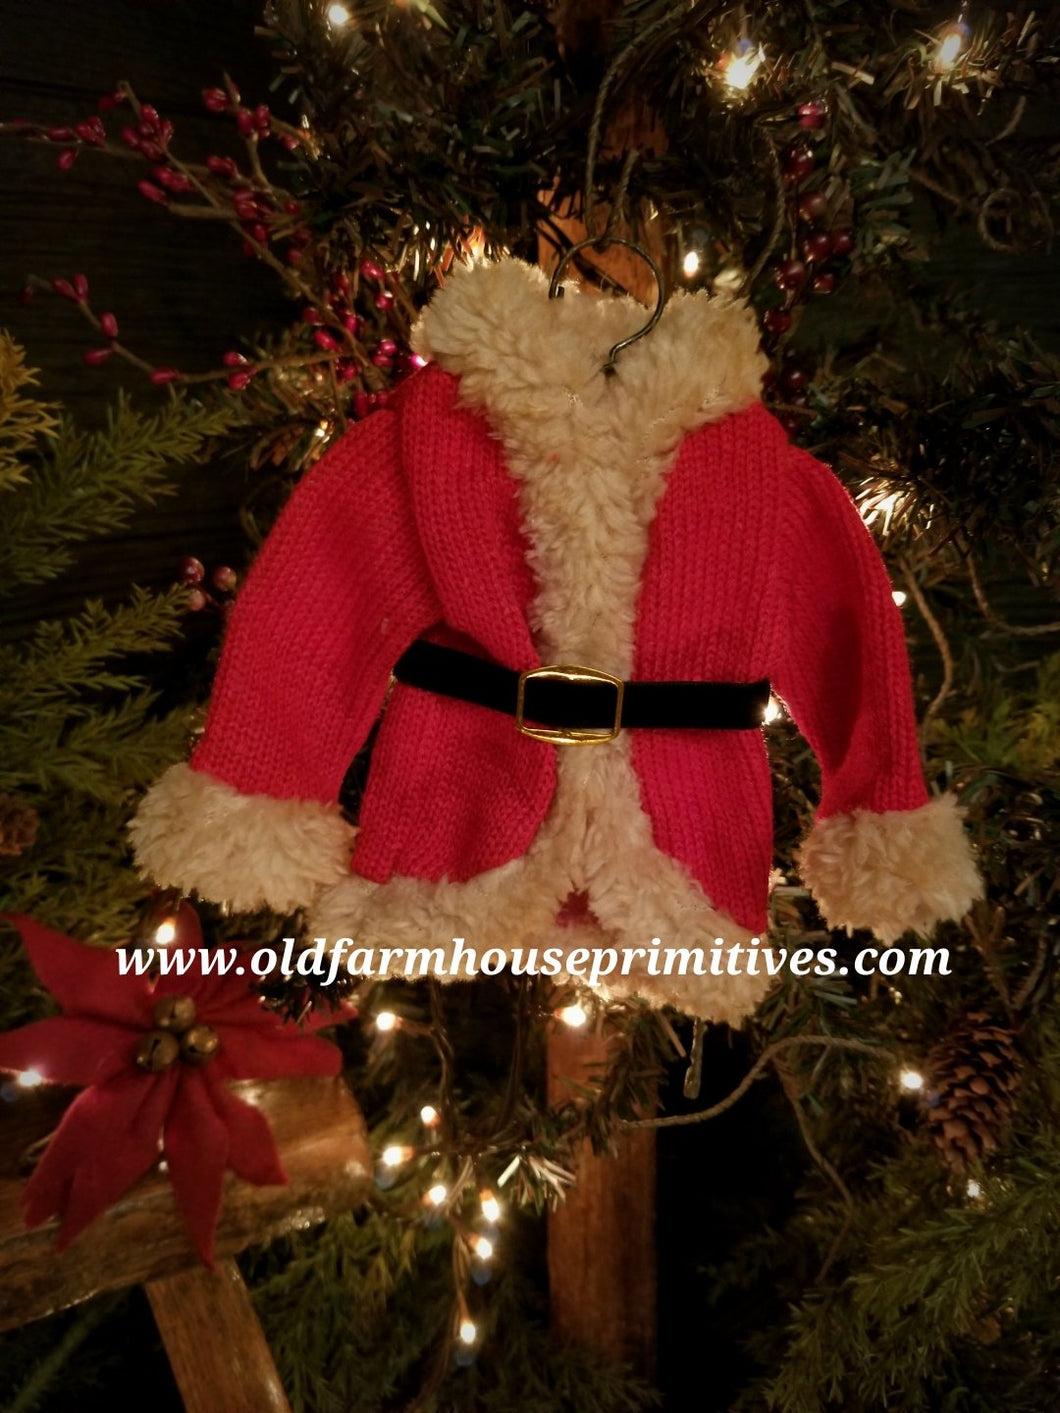 #GG5 Primitive Red Santa Coat 🎅 Christmas Tree 🎄Ornament